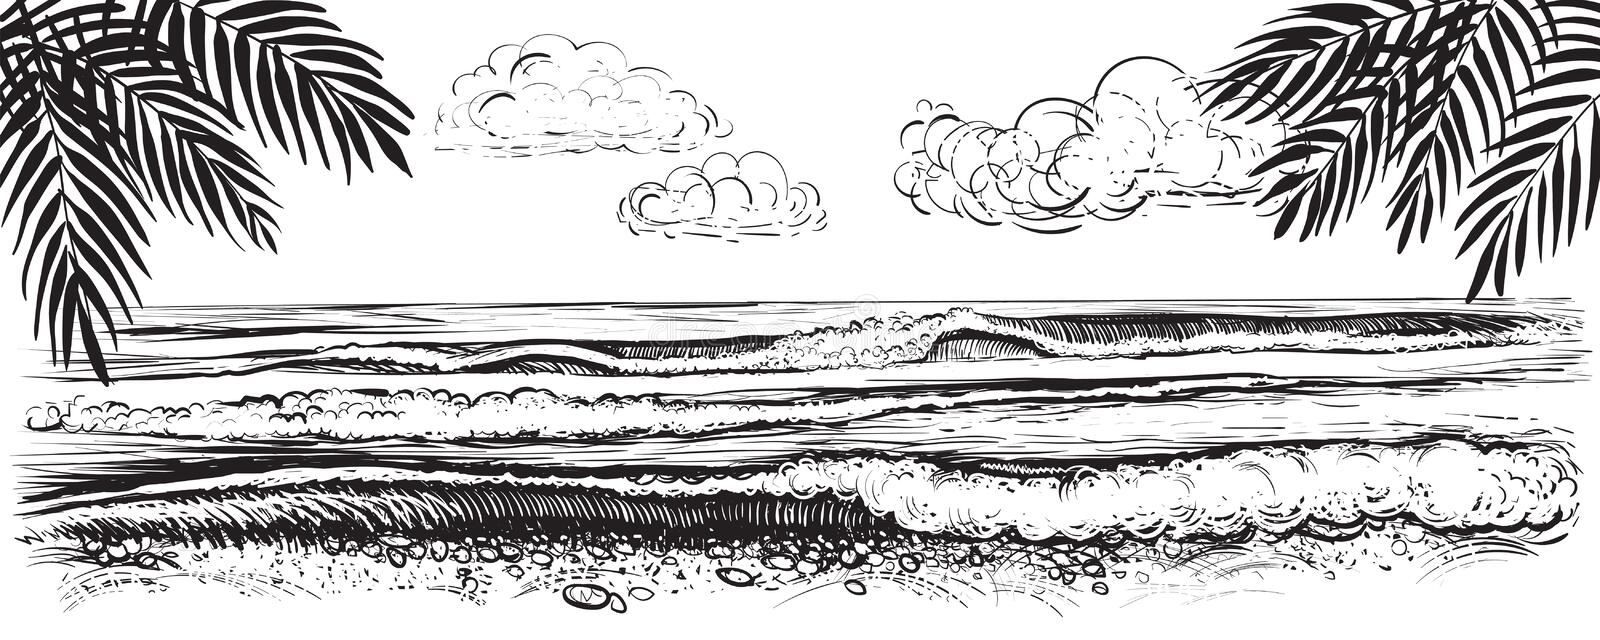 Panoramic beach view. Vector illustration of ocean or sea waves. Hand drawn. vector illustration